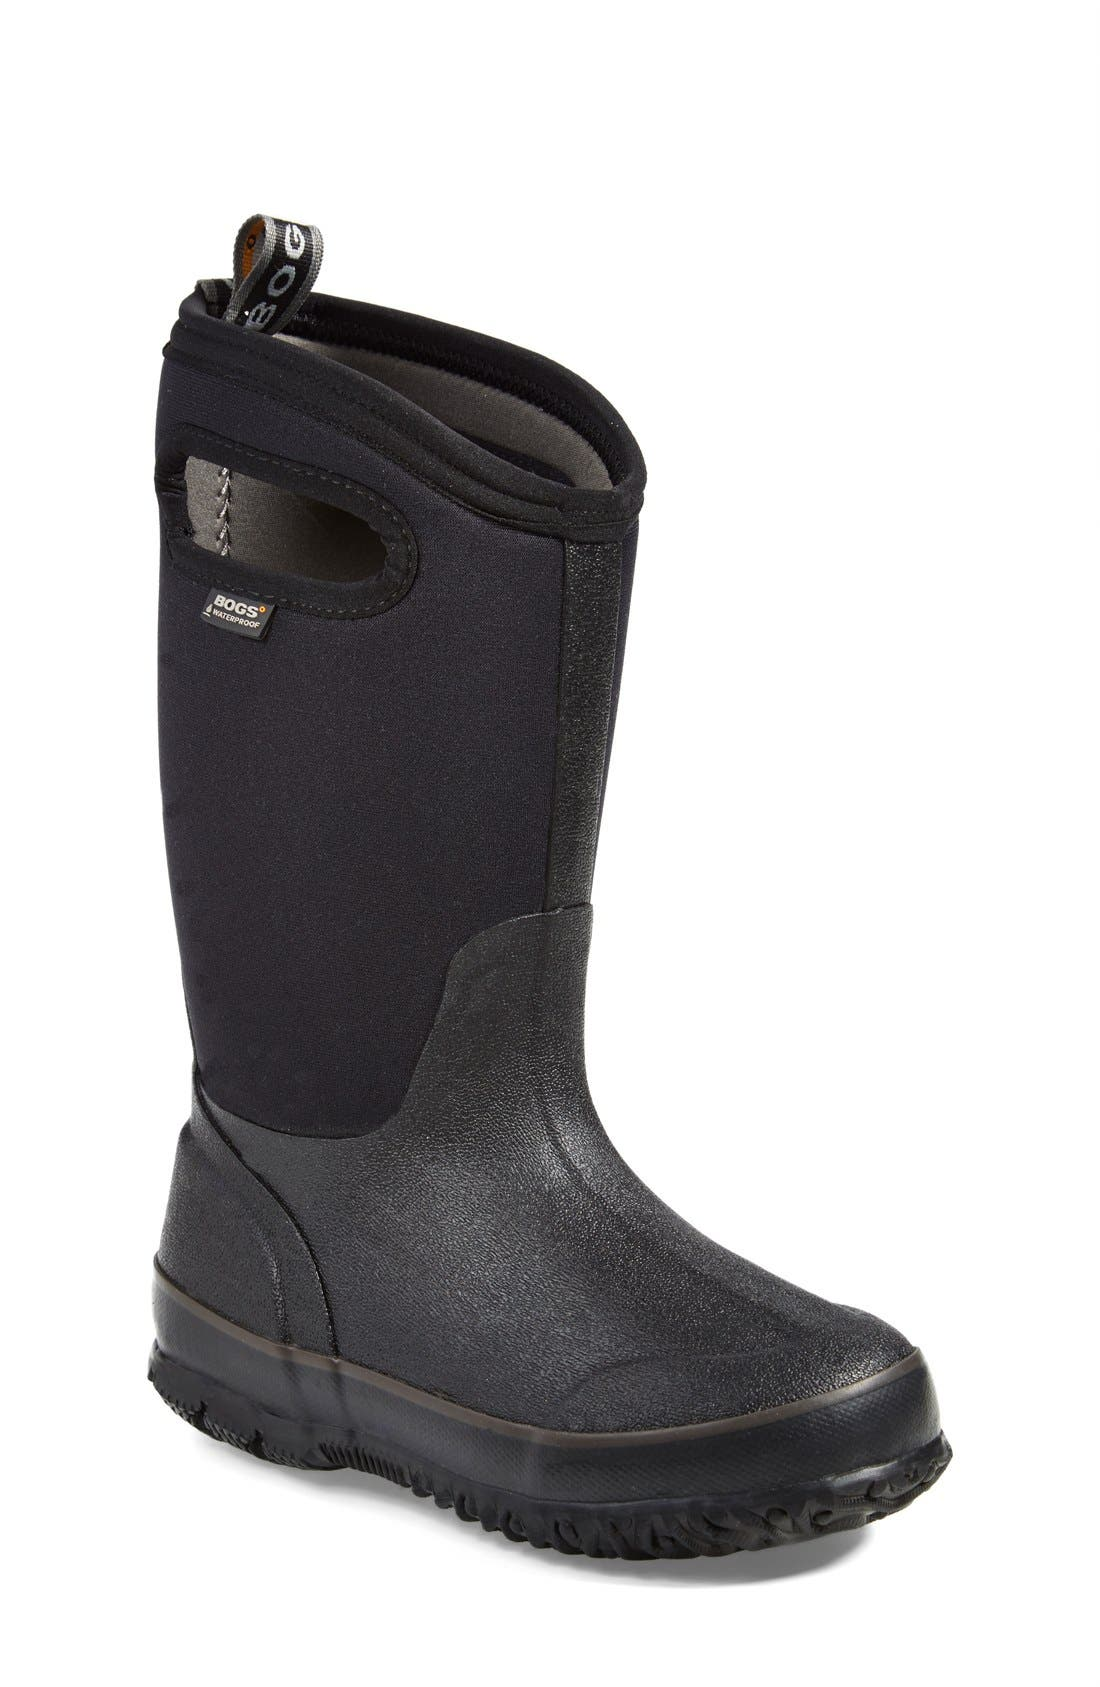 Alternate Image 1 Selected - Bogs 'Classic High' Waterproof Boot (Toddler, Little Kid & Big Kid)